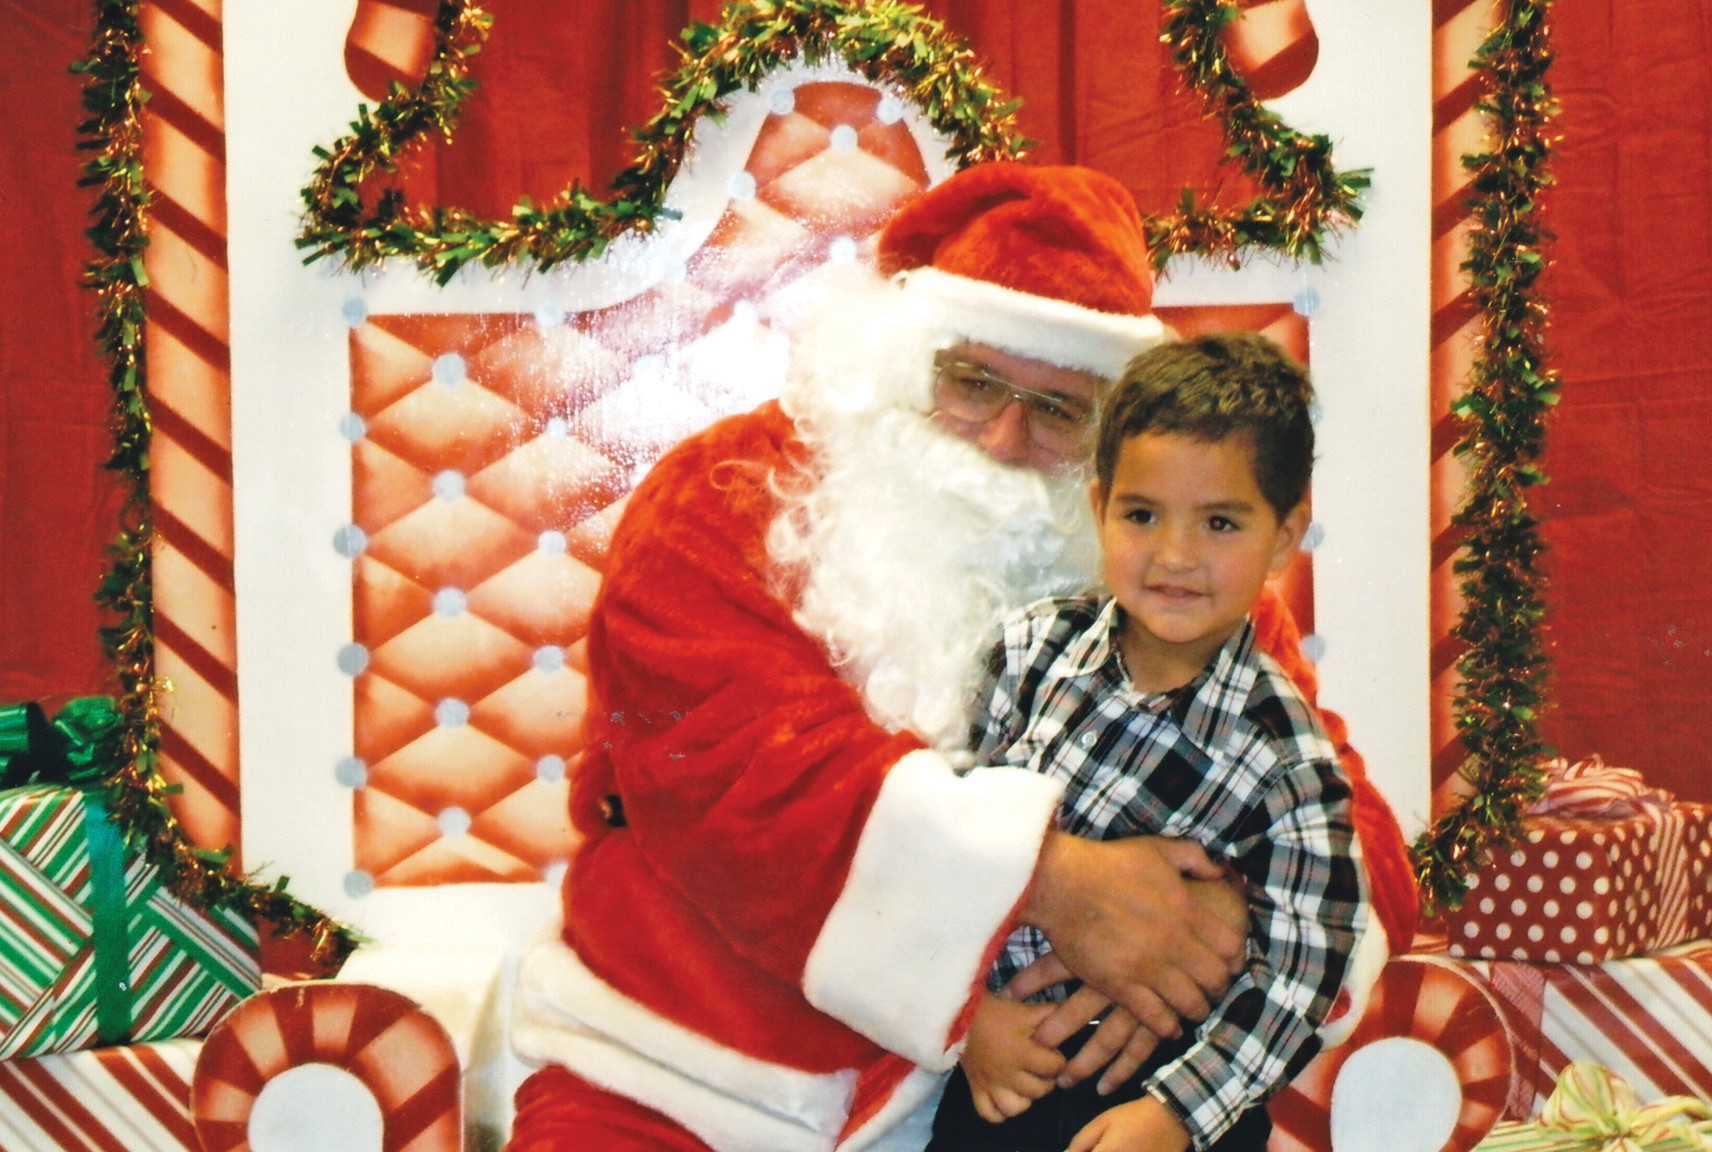 Wesley Okrahlik, 4-year-old son of Ashley and Frank Okrahlik, was able to tell Santa what he wanted at the Jourdanton Library this past Monday evening.